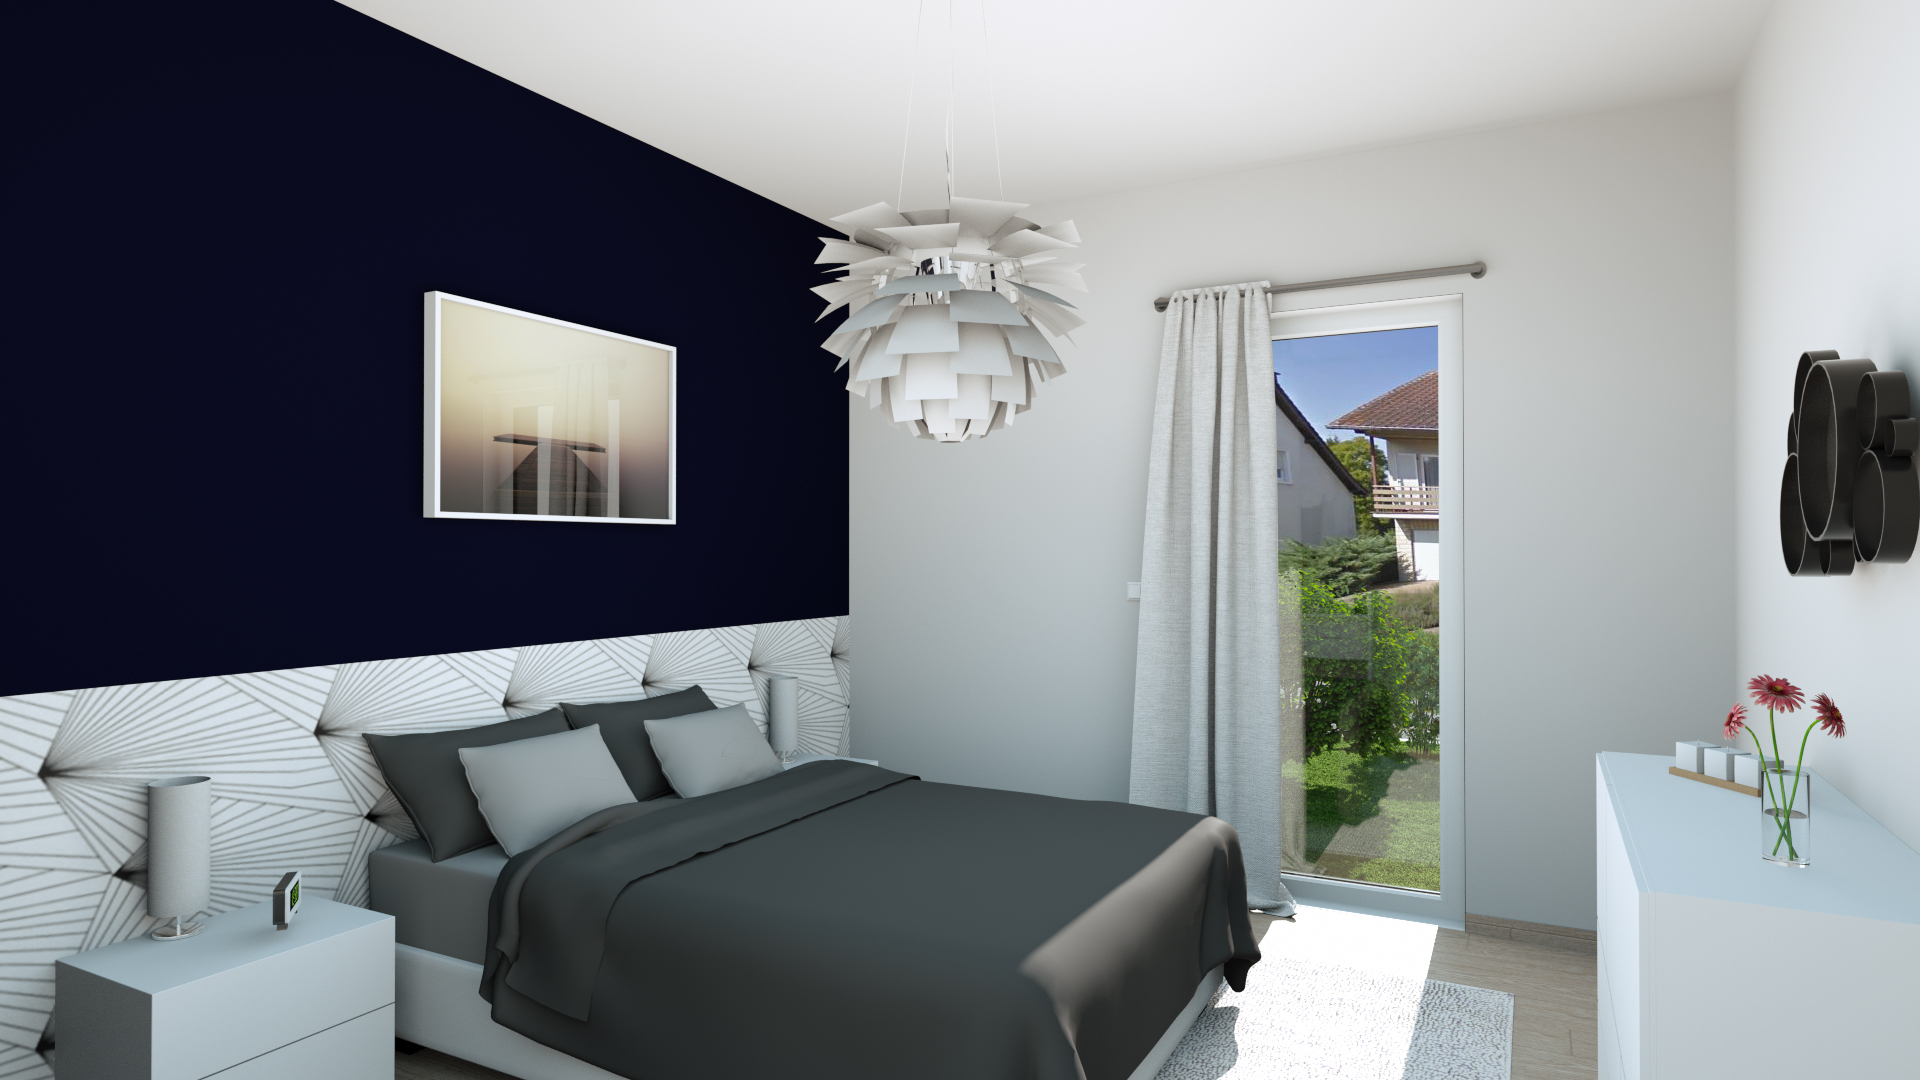 cre ta maison virtuel amazing creation d vr with cre ta. Black Bedroom Furniture Sets. Home Design Ideas